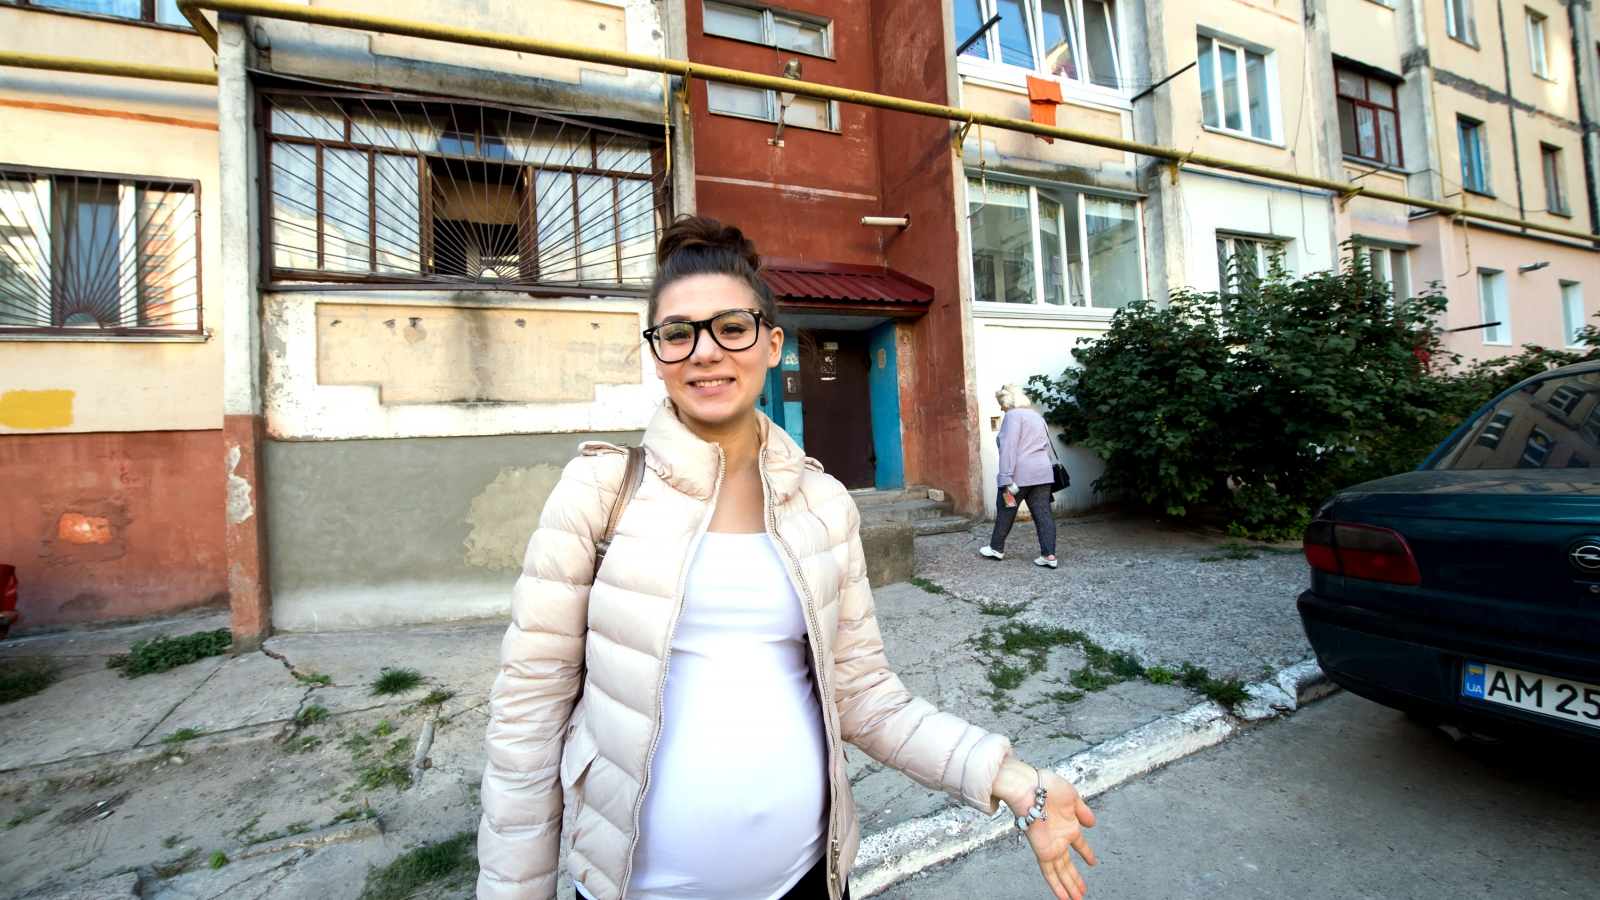 Kateryna lives in an energy efficient apartment building in Zhytomyr